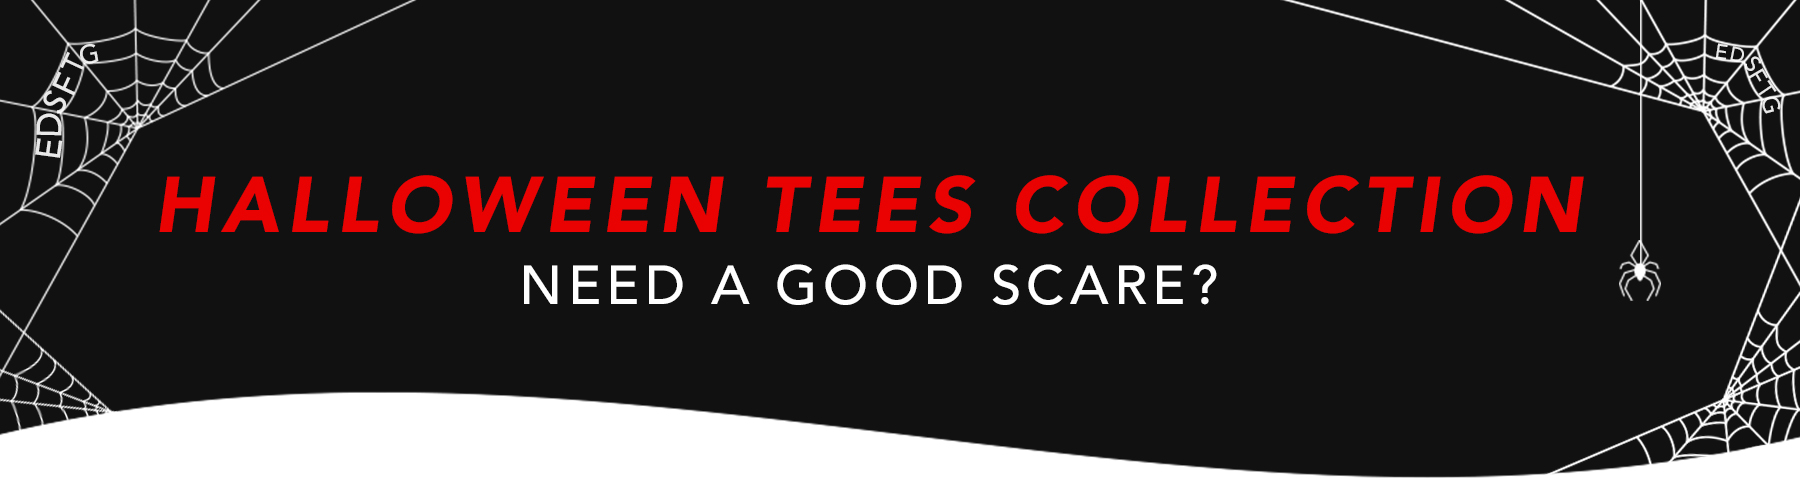 Halloween Tees Collection. Need a good scare?